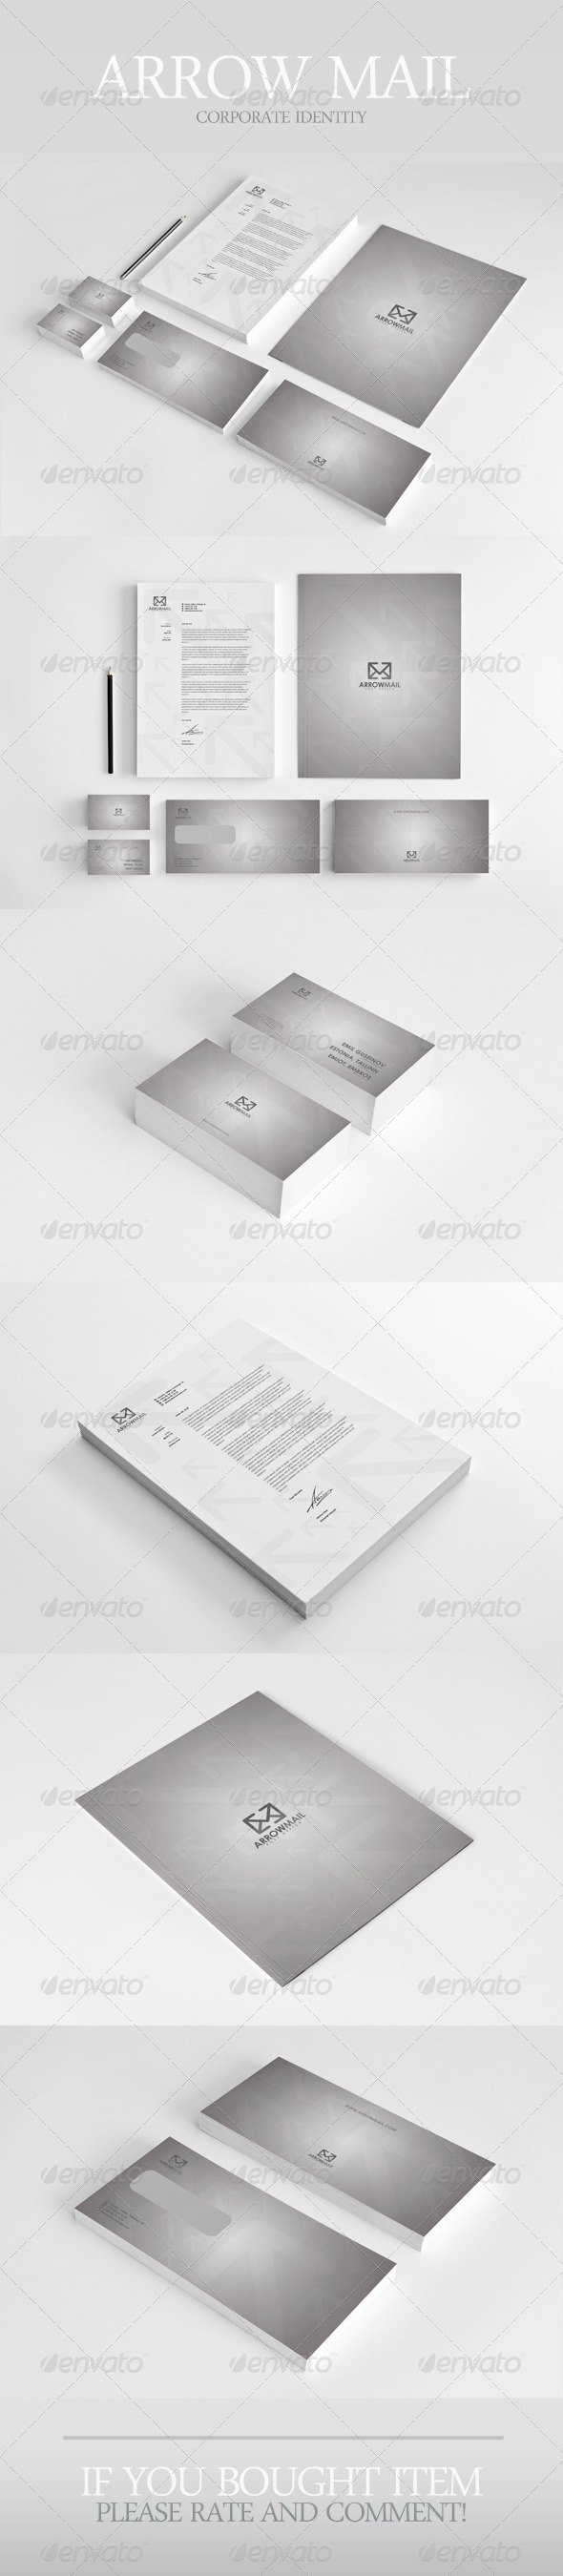 Arrow Mail Corporate Identity - Stationery Print Templates